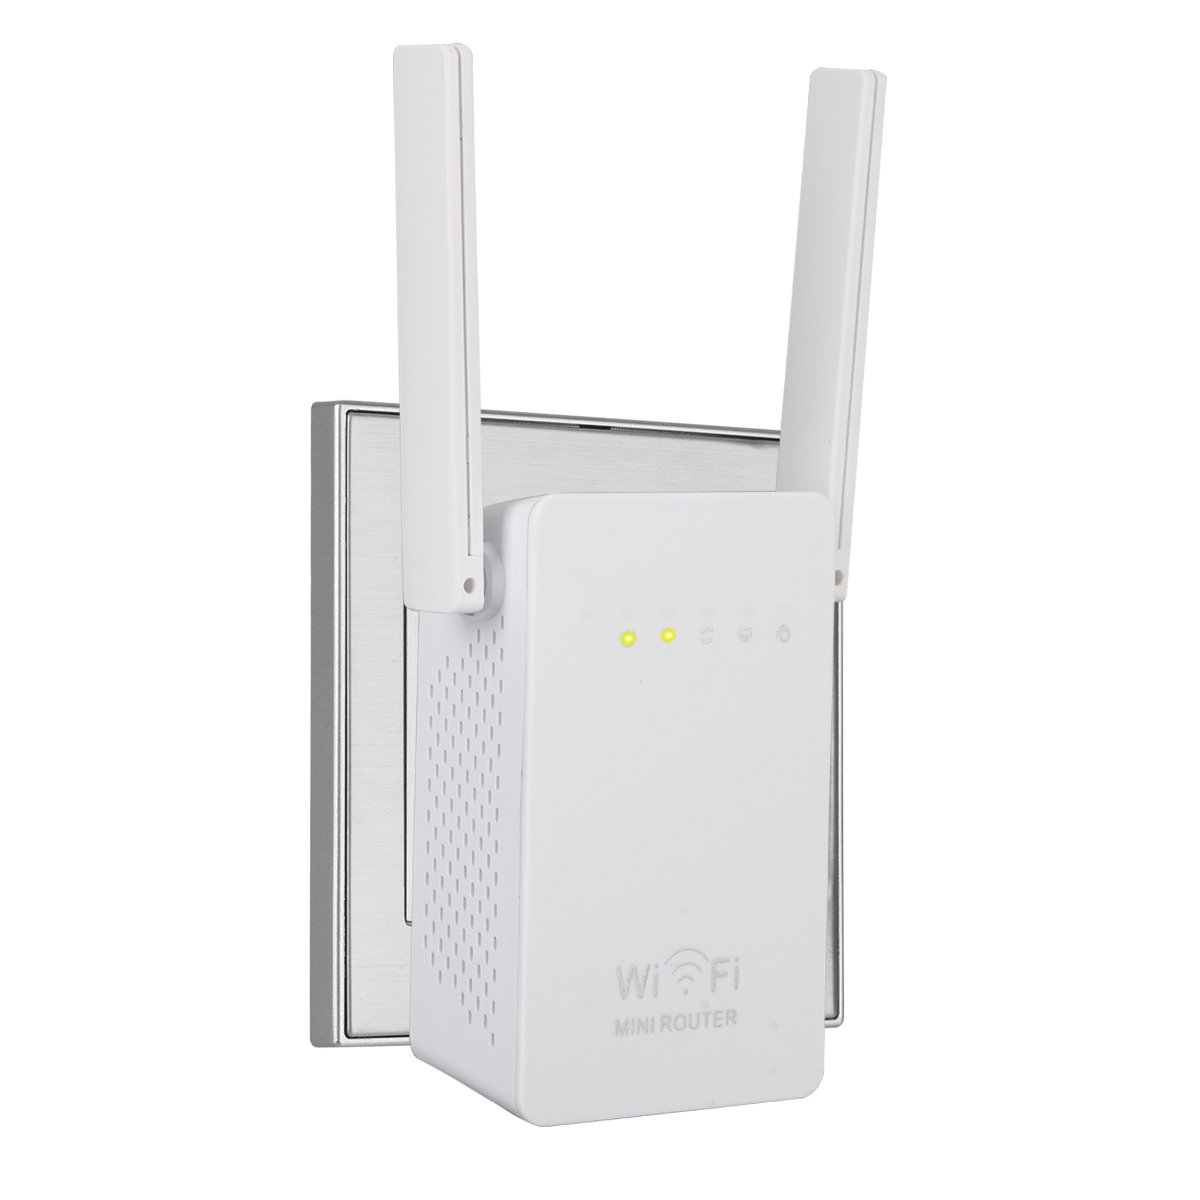 WiFi Extender, SERMICLE Wireless WIFI Booster Wi-Fi Range Extender Antenna Wifi AP/Repeater with Long Range Extender 180°Rotation Antenna WPS 300Mbps (300Mbps WAN/LAN) by Sermicle